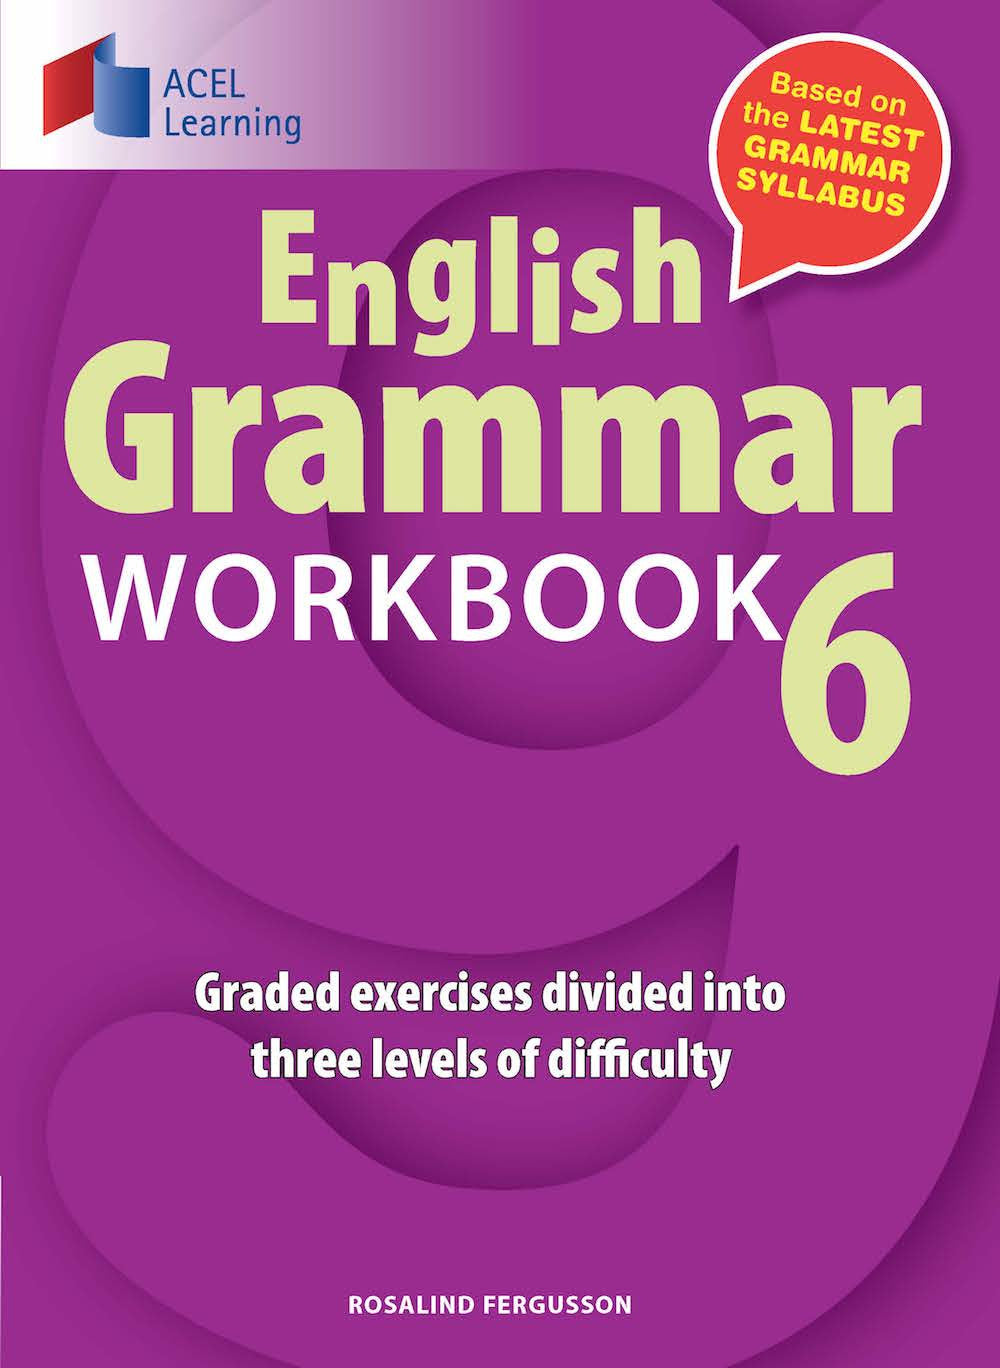 English Grammar Workbook 6